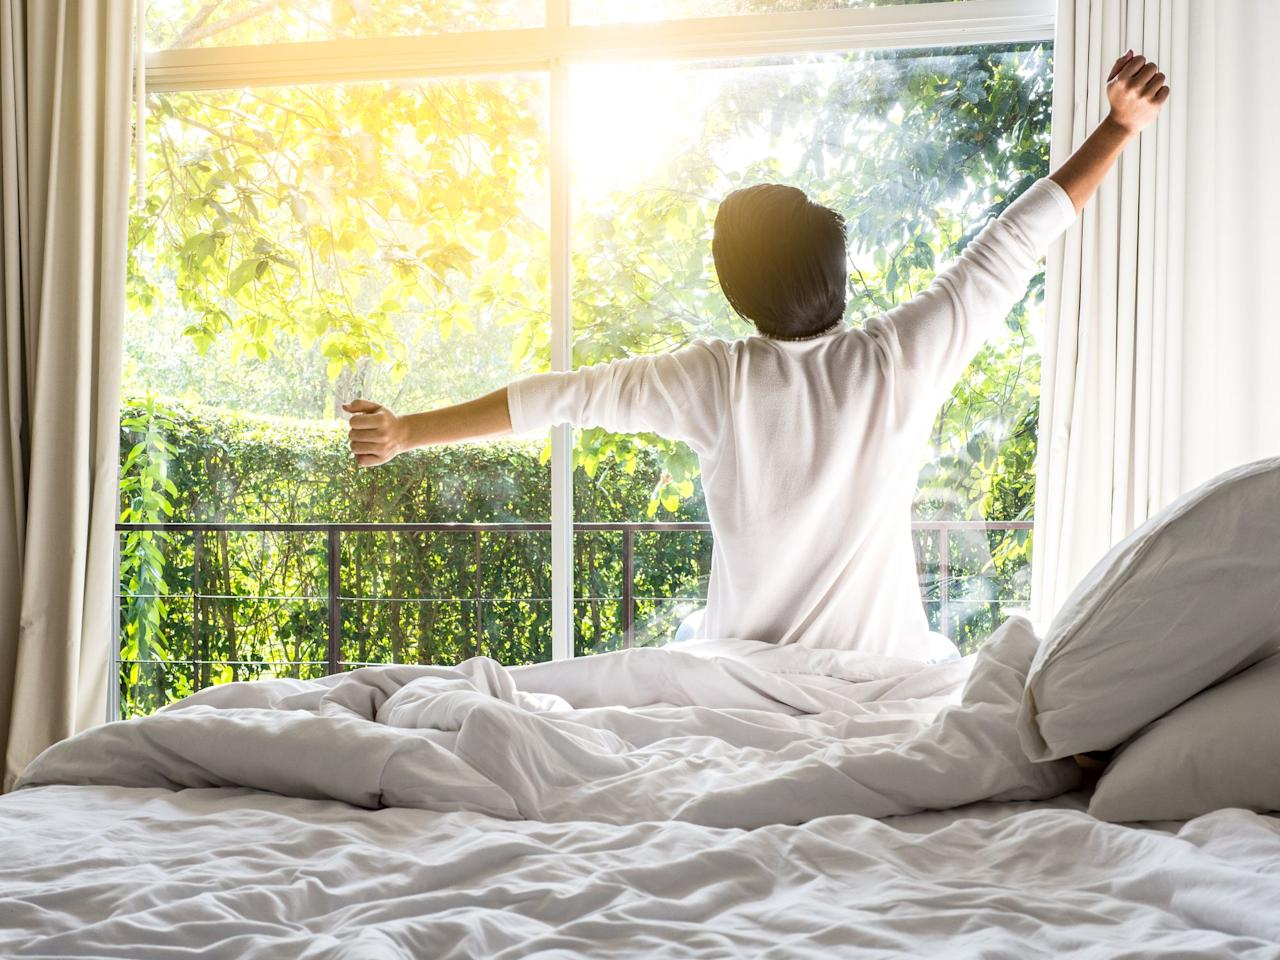 """<p>If the beginning of Daylight Saving Time leaves you feeling discombobulated, you're not alone. Doctors report <a href=""""http://openheart.bmj.com/content/1/1/e000019"""">a 24% spike</a> in heart-attacks around the country each time the clock springs forward, and a 21% decrease when the clocks fall back in the autumn. The <a href=""""https://psycnet.apa.org/record/2009-12532-013"""" target=""""_blank"""">incidence of workplace injuries</a> also rises on the Monday after the clocks change, as employees get an average of 40 fewer minutes of shut-eye the night before. Studies have even shown that Daylight Saving Time can lead to a brief increase in <a href=""""https://journals.lww.com/epidem/Fulltext/2017/05000/Daylight_Savings_Time_Transitions_and_the.7.aspx"""" target=""""_blank"""">depressive episodes</a>.  That's all because it messes with our <a href=""""https://www.goodhousekeeping.com/health/wellness/a19876/sleep-better/"""" target=""""_blank"""">sleep schedule</a> — and a good night's sleep is one of the most important things we can give to ourselves. </p><p>""""It's difficult to find a part of our health that isn't impacted by our sleep,"""" says Natalie Dautovich, Ph.D., the environmental fellow for <a href=""""https://www.sleepfoundation.org/"""" target=""""_blank"""">The National Sleep Foundation</a>. """"Among many other functions, healthy sleep is important for healing and repairing the heart and blood vessels, reducing risk for obesity, promoting healthy cognitive functioning, and promoting a healthy immune response."""" But if losing an hour on March 8 this year tempts you to hit that snooze button a couple more times, think again. Sleep experts say there are better ways to reduce the time change's impact on your body, your schedule, and your general well-being. Here's their advice for surviving the spring forward, so you can feel more motivated to make the most of that extra evening daylight. </p>"""